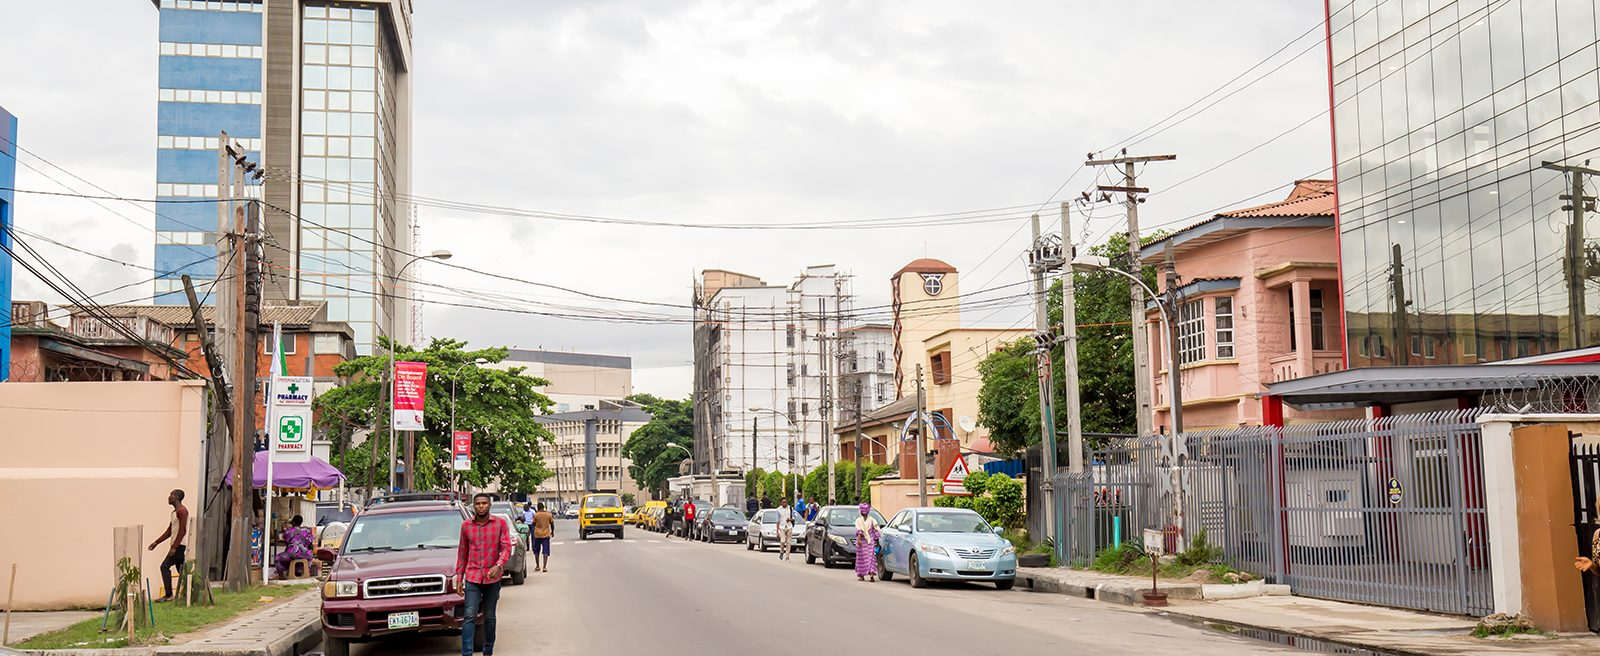 Sabo, Yaba, Lagos | | Neighbourhood Guide